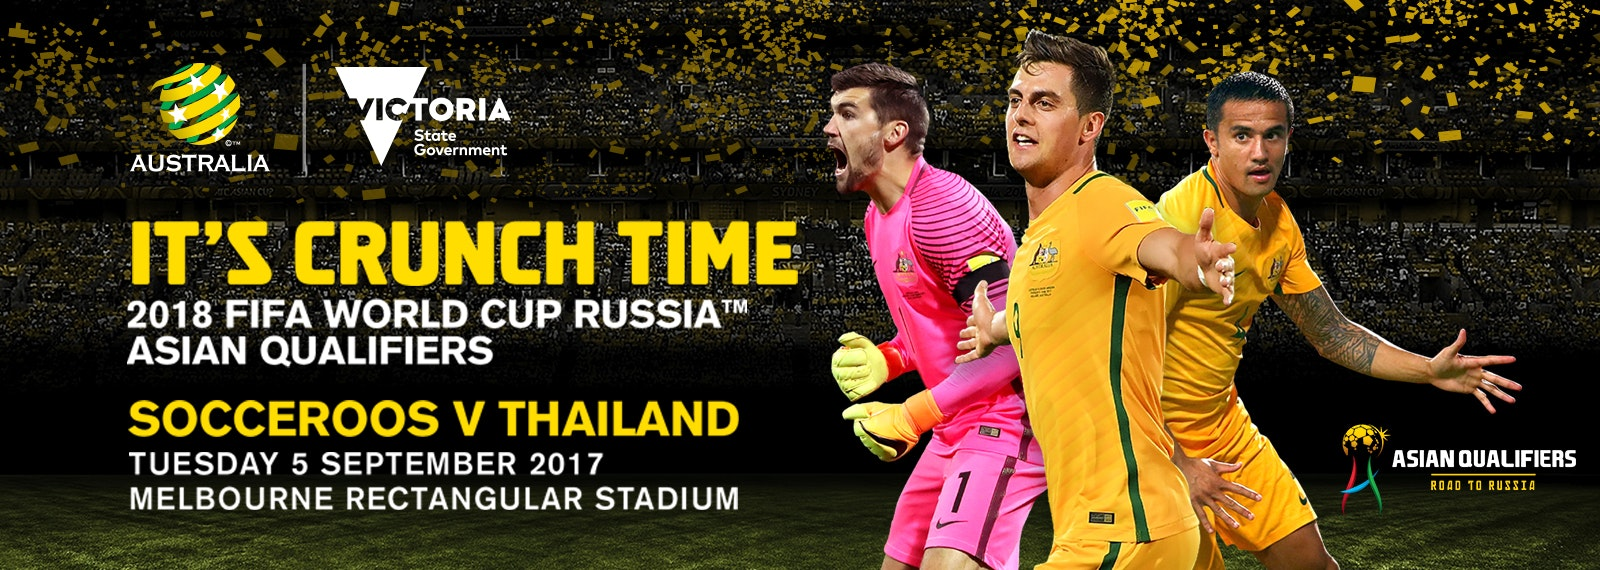 World Cup Qualifier - Socceroos v Thailand